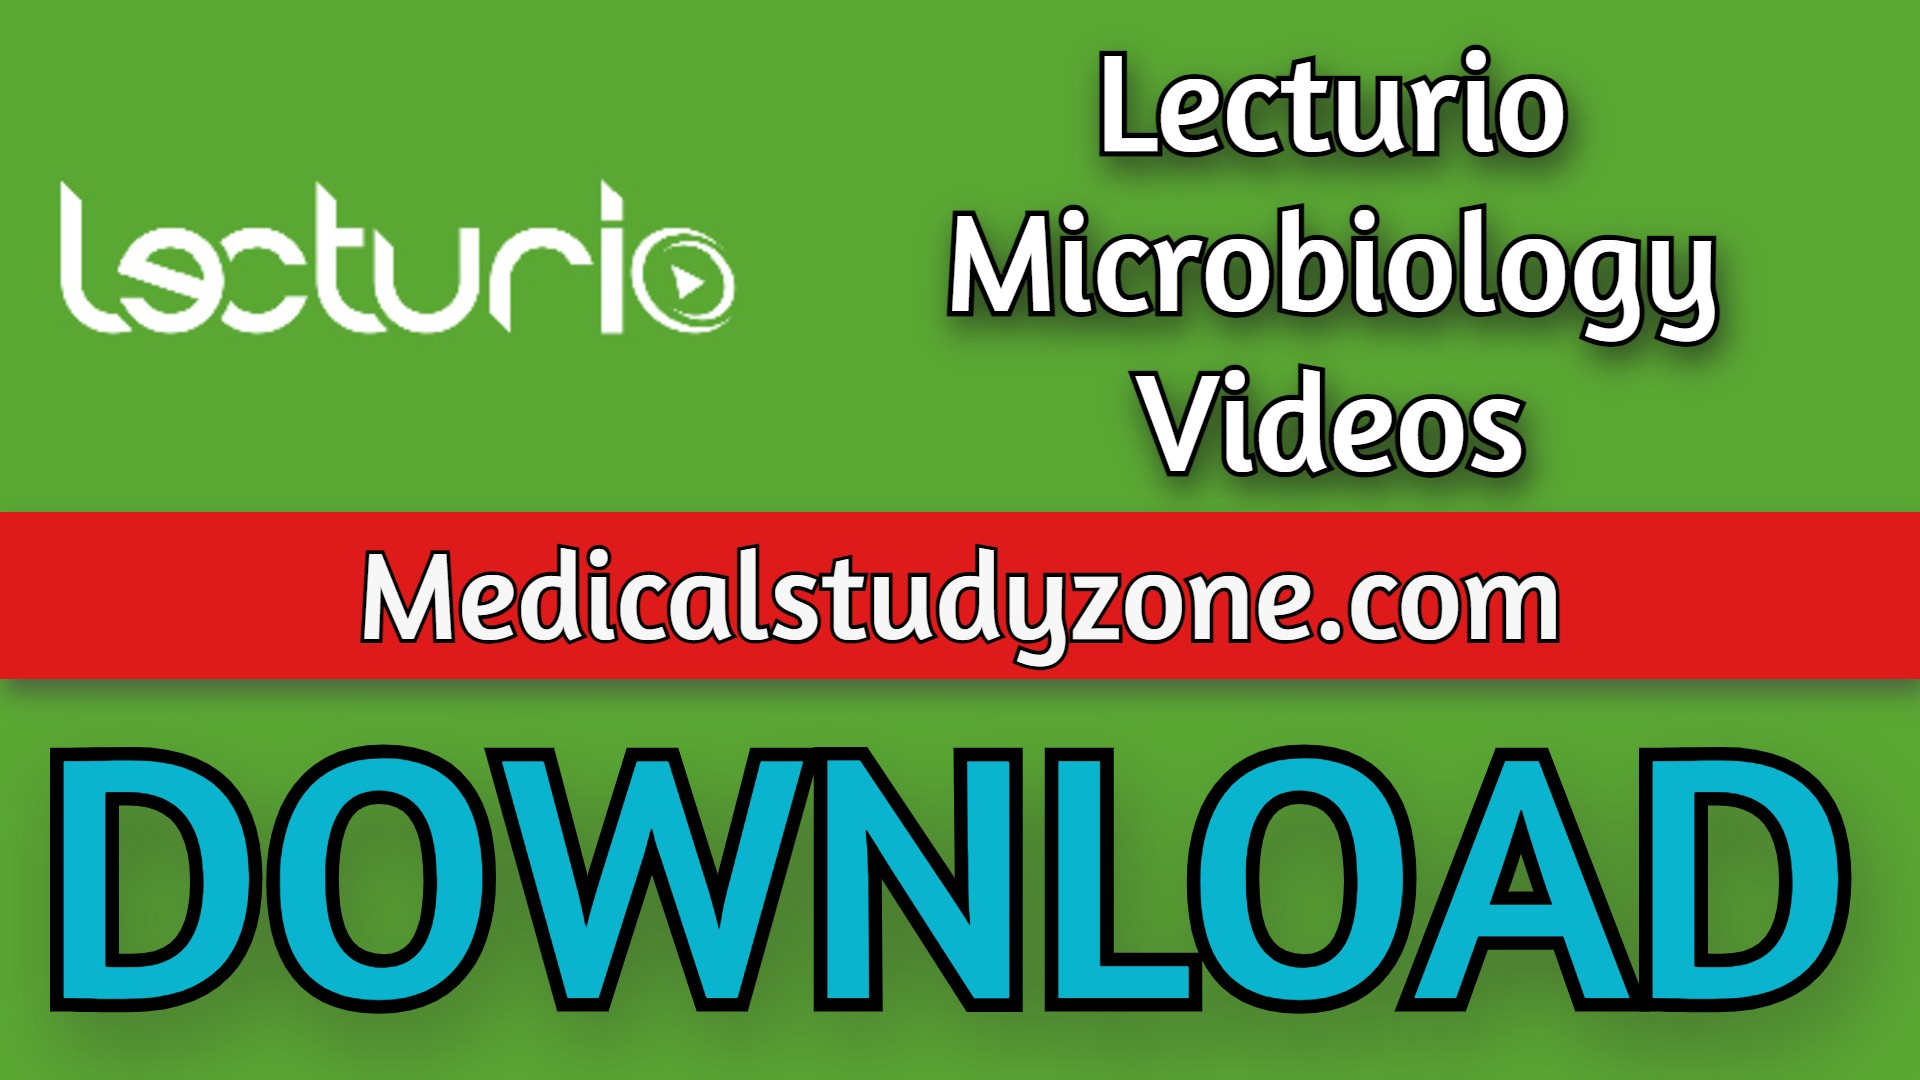 Lecturio Microbiology Videos 2021 Free Download